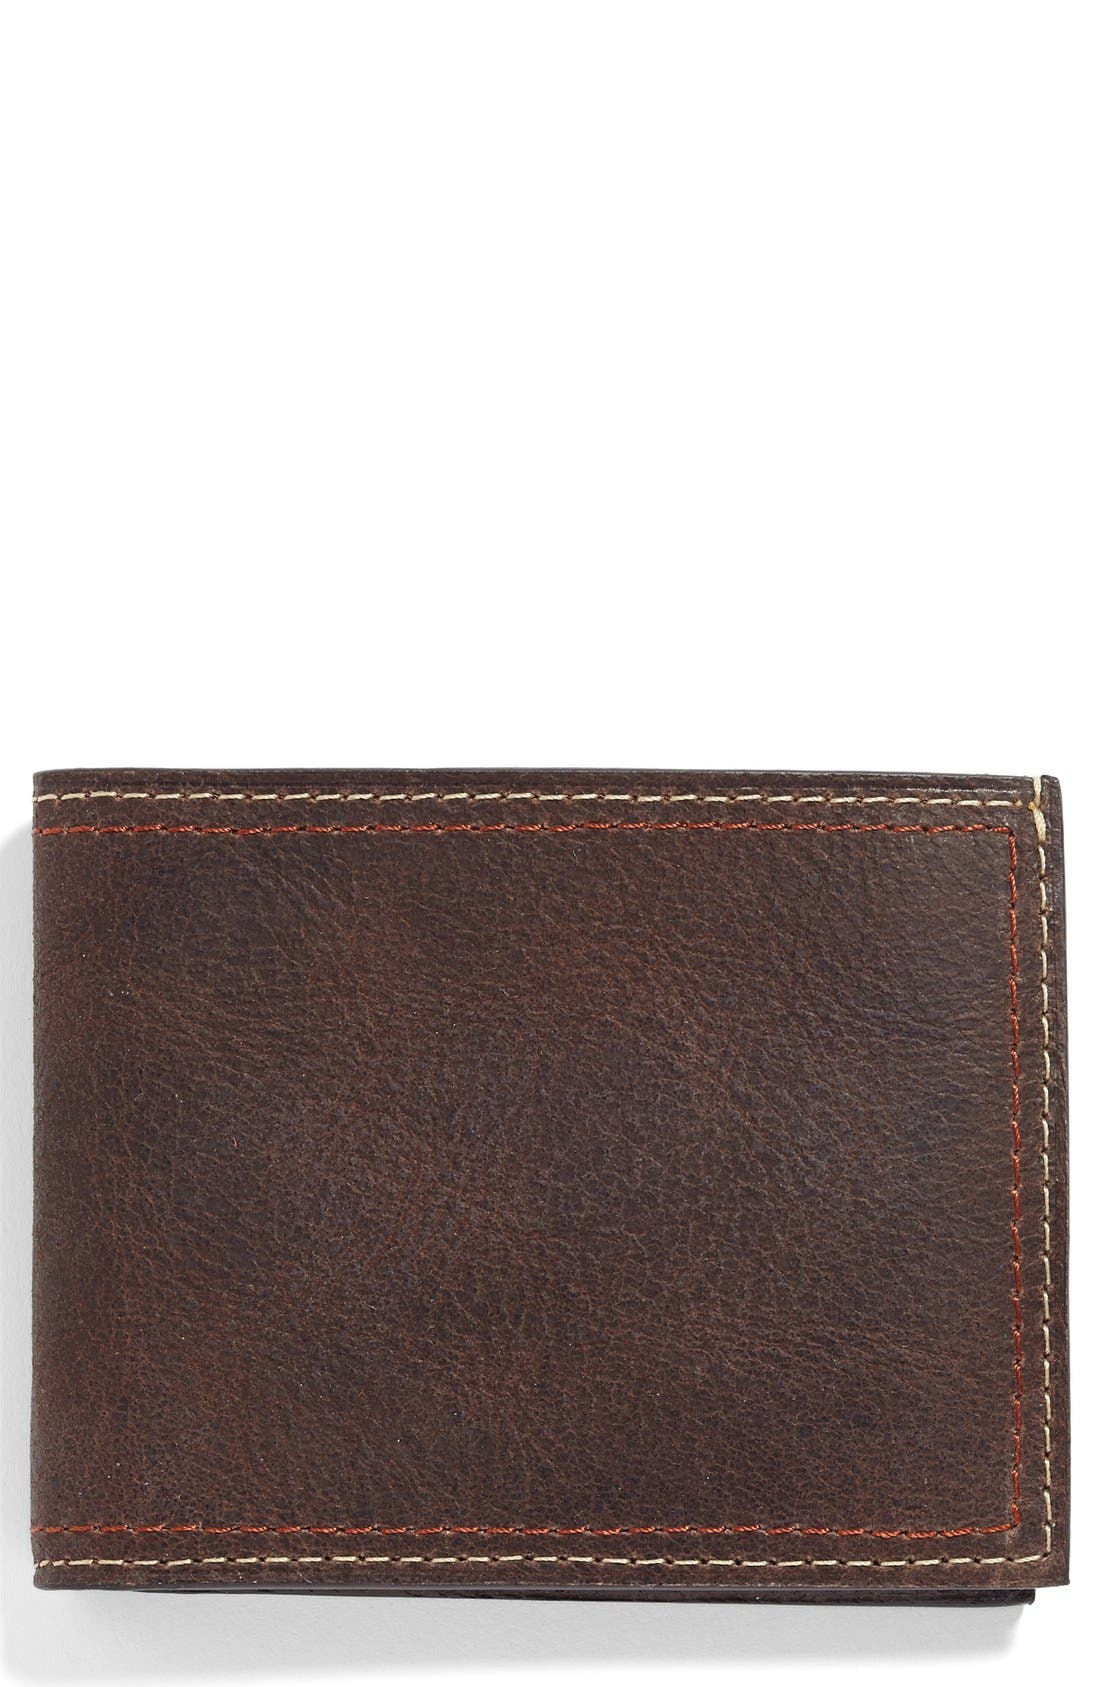 MARTIN DINGMAN Water Buffalo Leather Wallet